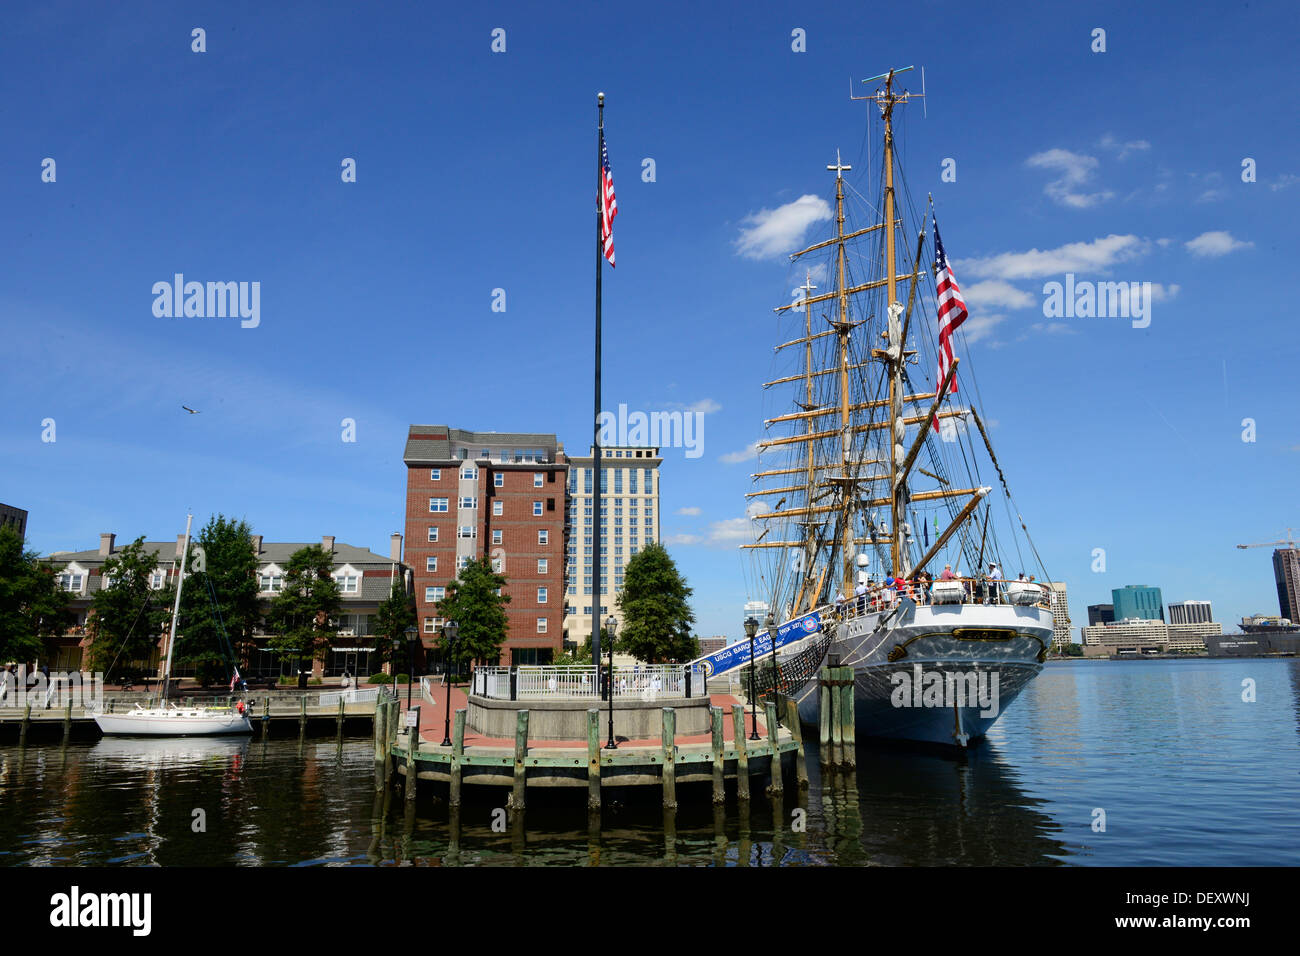 The Coast Guard Barque Eagle moored in Portsmouth, Va., on Sunday, Sept. 15, 2013. Thousands of people stopped by to tour the historic tall ship. - Stock Image